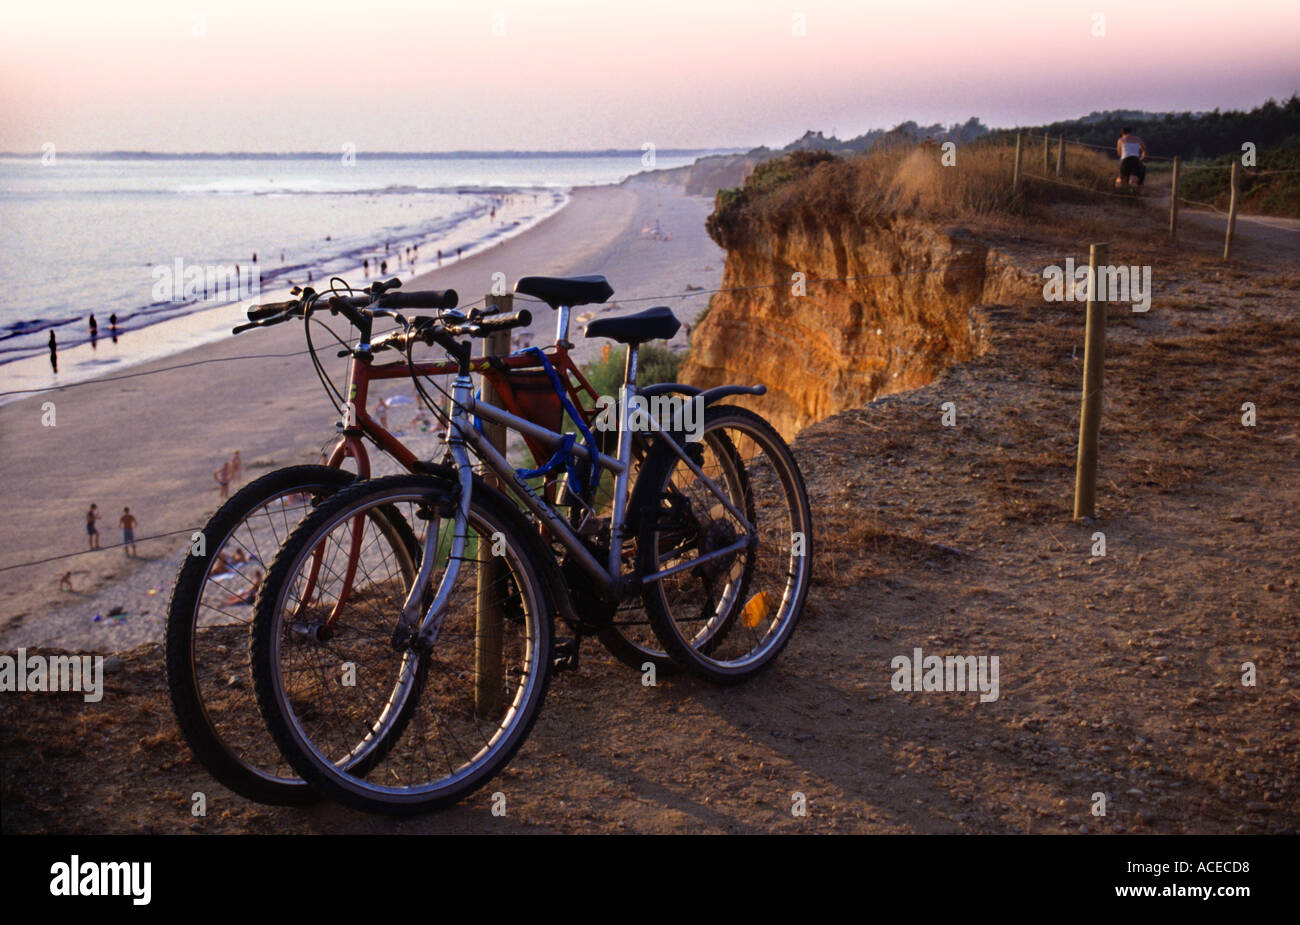 Bikes at Sunset during the heatwave of 2003 - Stock Image